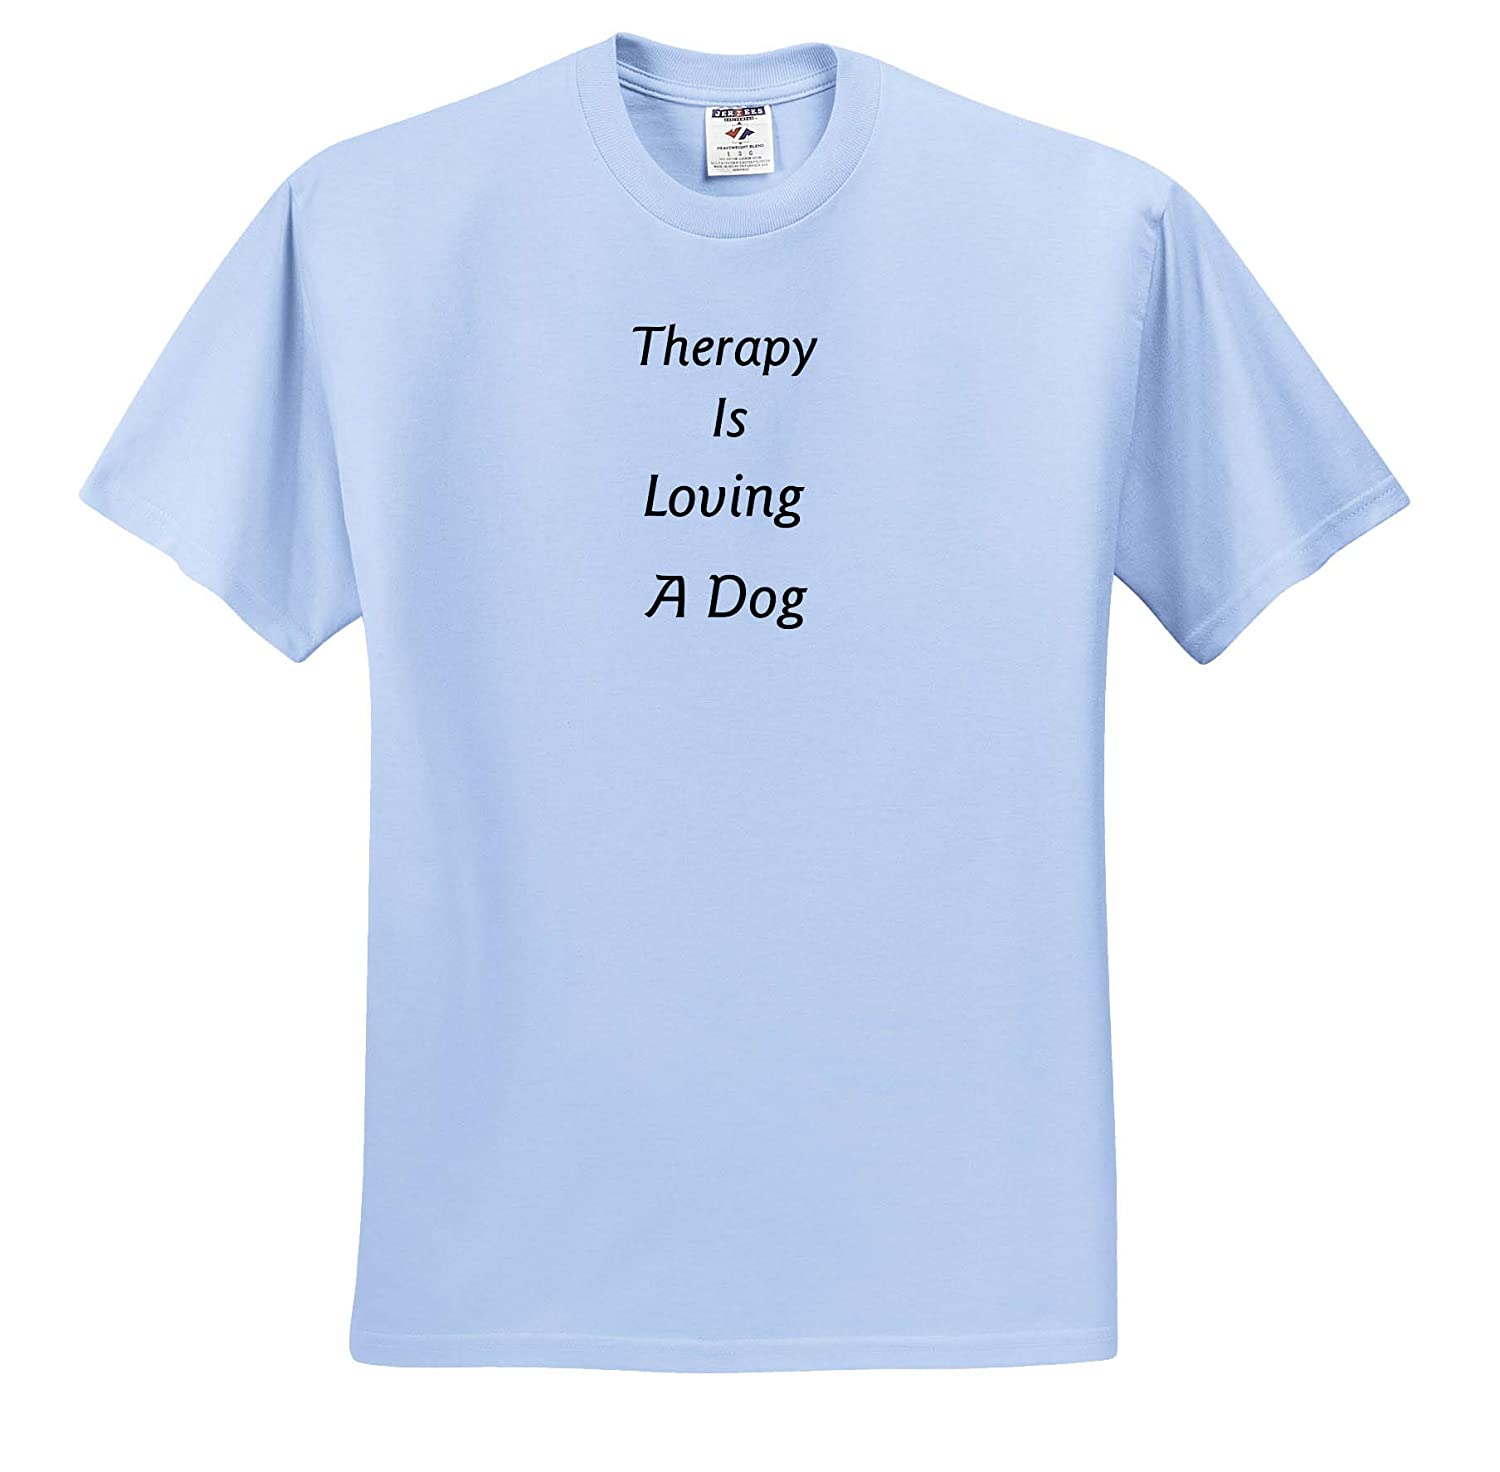 ts/_311384 Adult T-Shirt XL 3dRose Lens Art by Florene Image of Therapy is Loving A Dog in Bold Words Therapy is